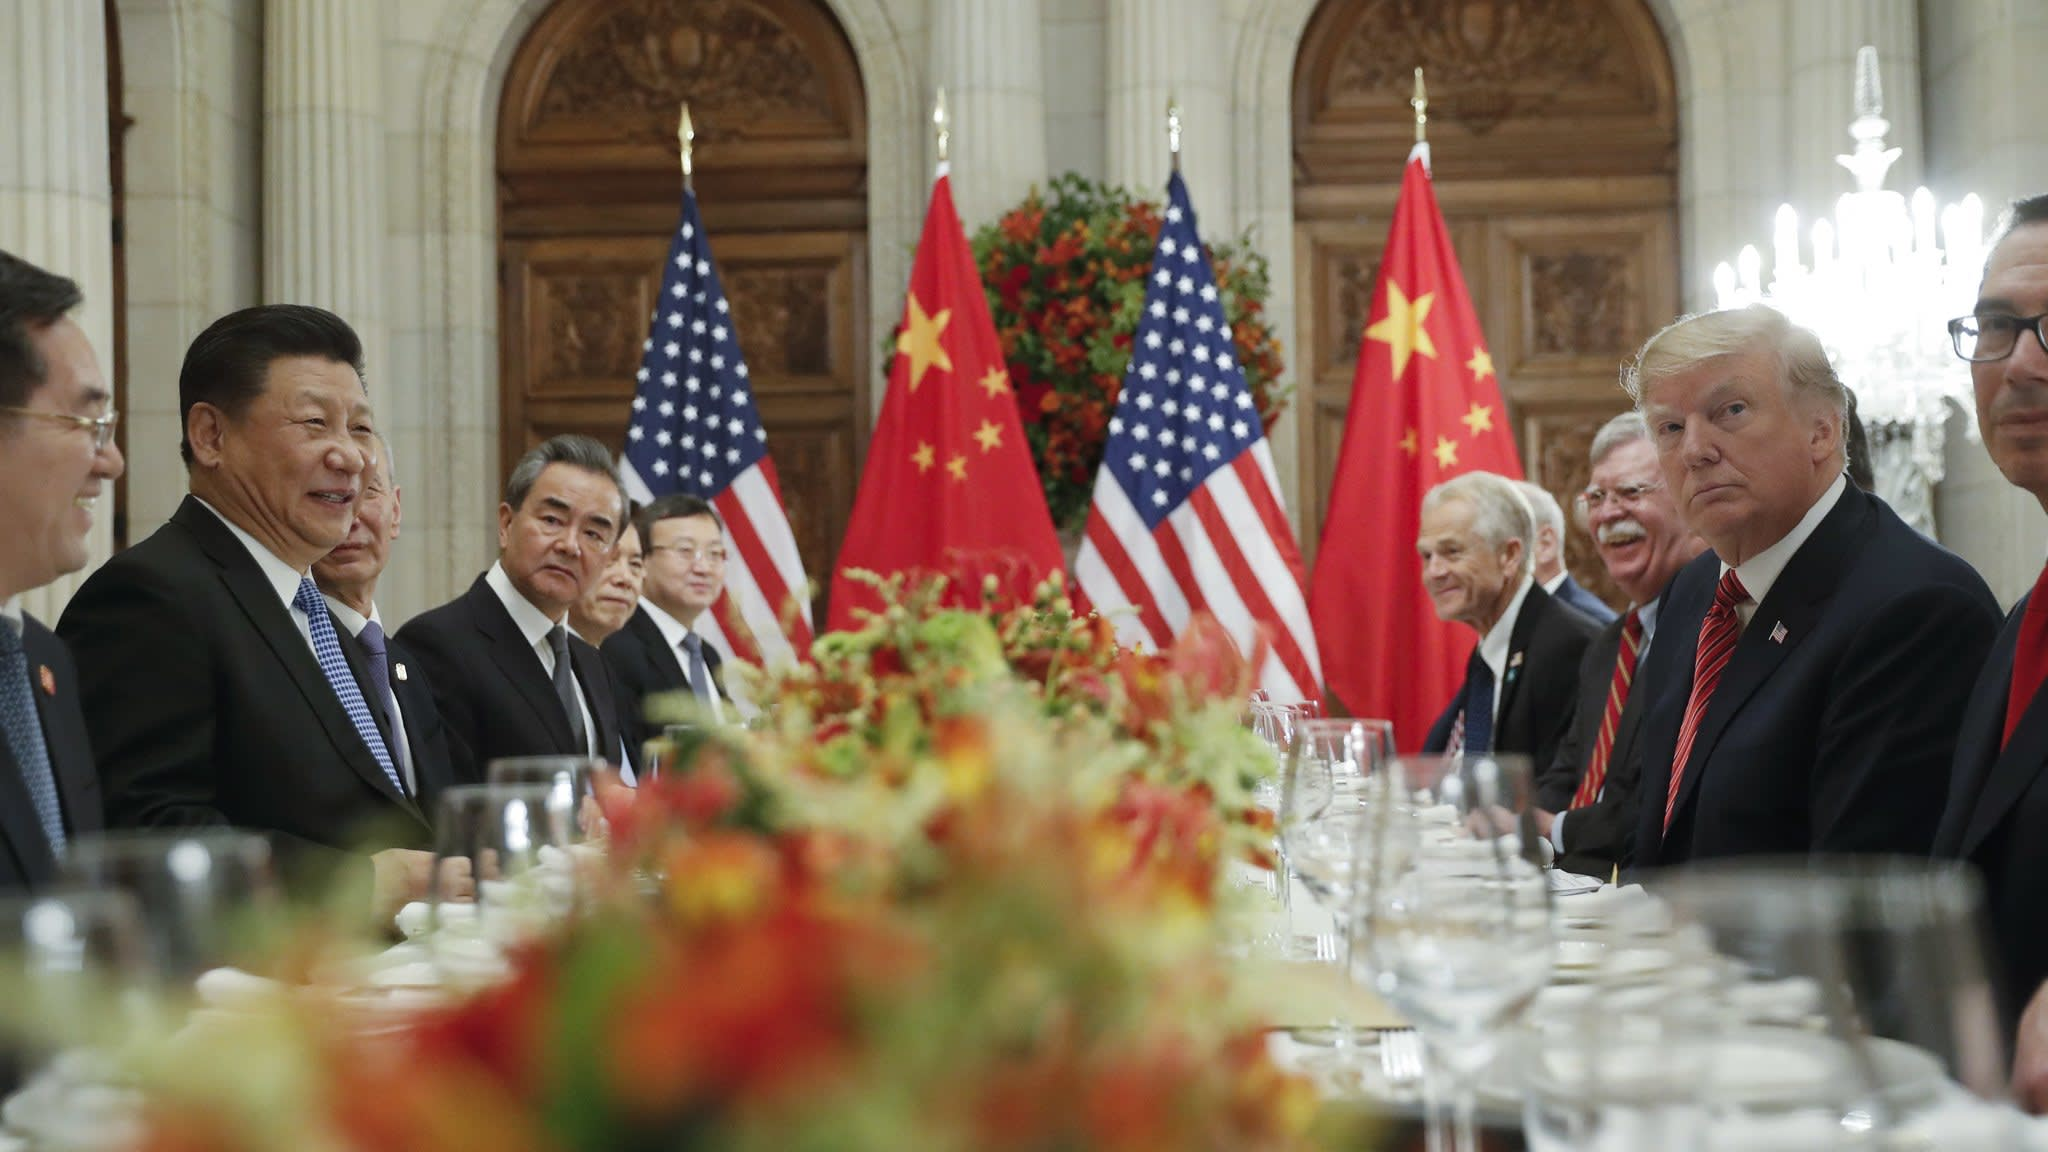 Trump and Xi upbeat as they enter crucial trade meeting